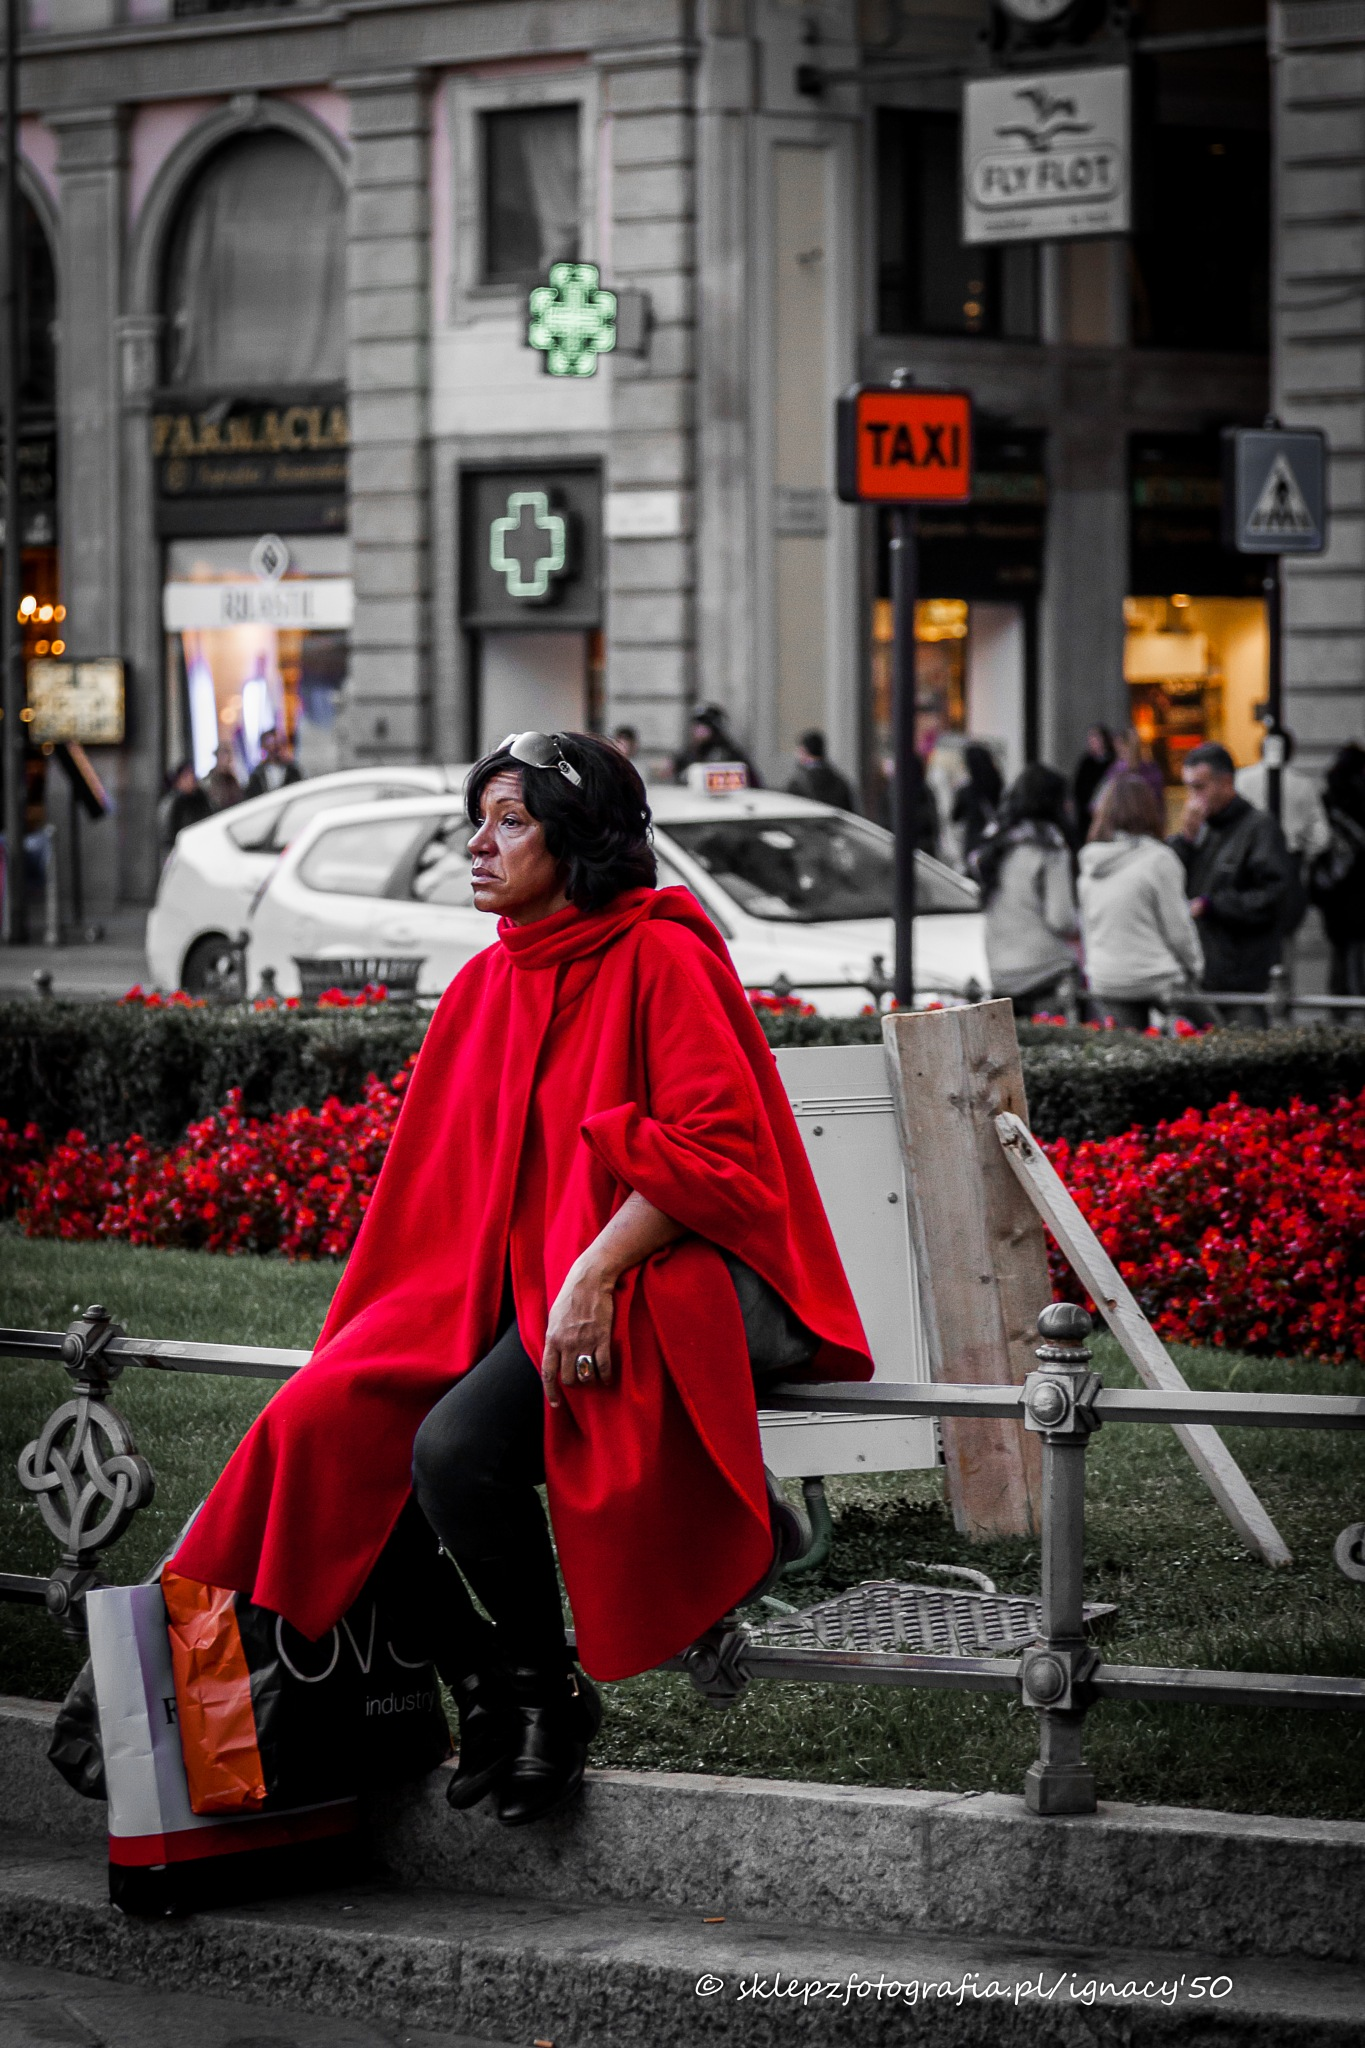 An evening in Milan - the women in red 1st by ignacy50